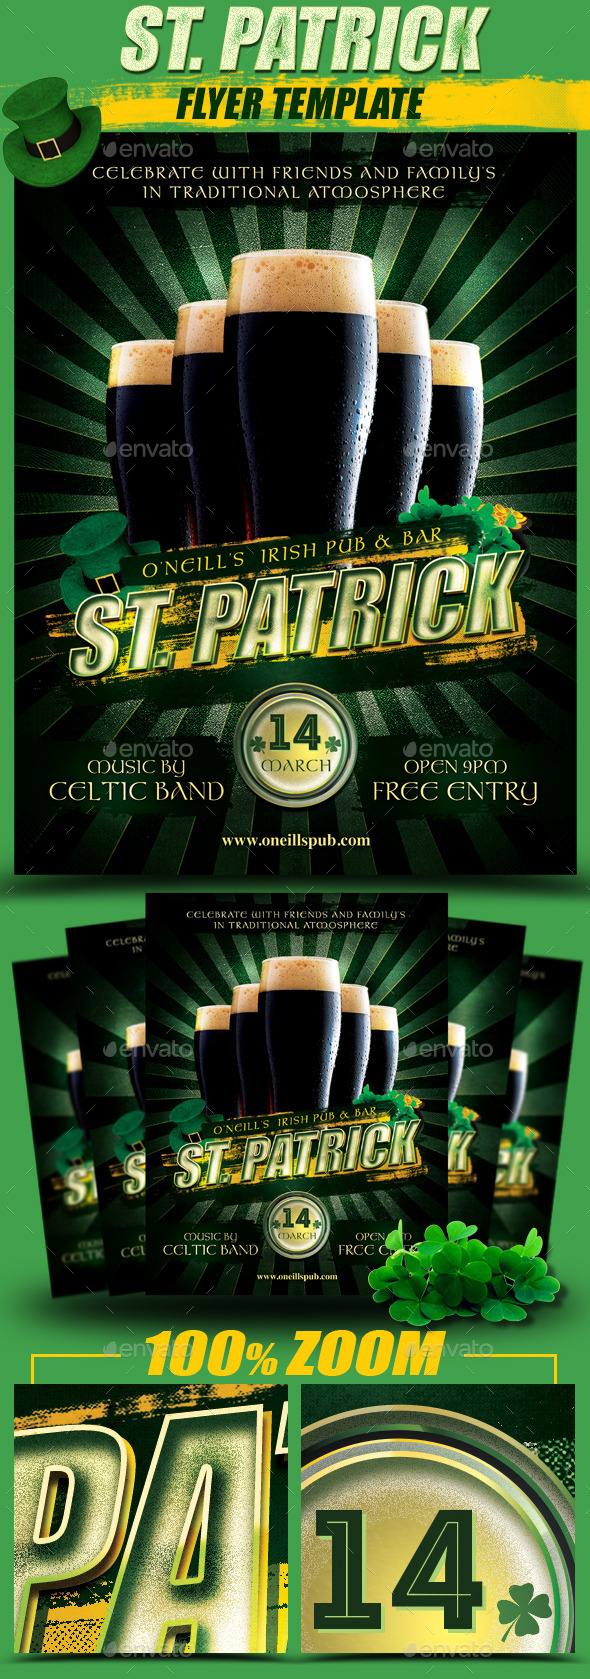 St. Patrick Black Beer Flyer Template - Holidays Events